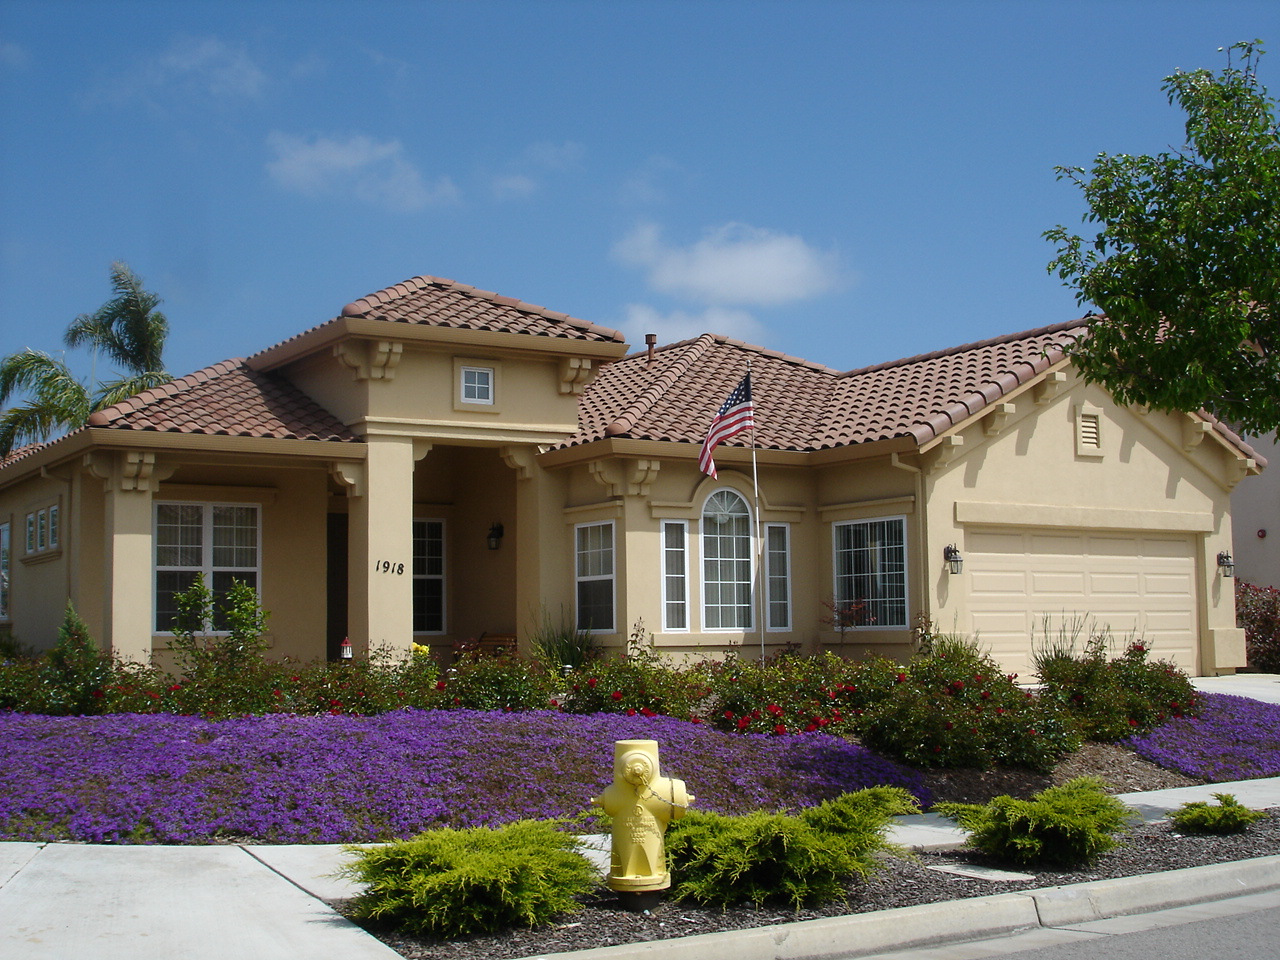 File ranch style home in salinas california jpg wikimedia commons - California ranch style house plans ideas ...